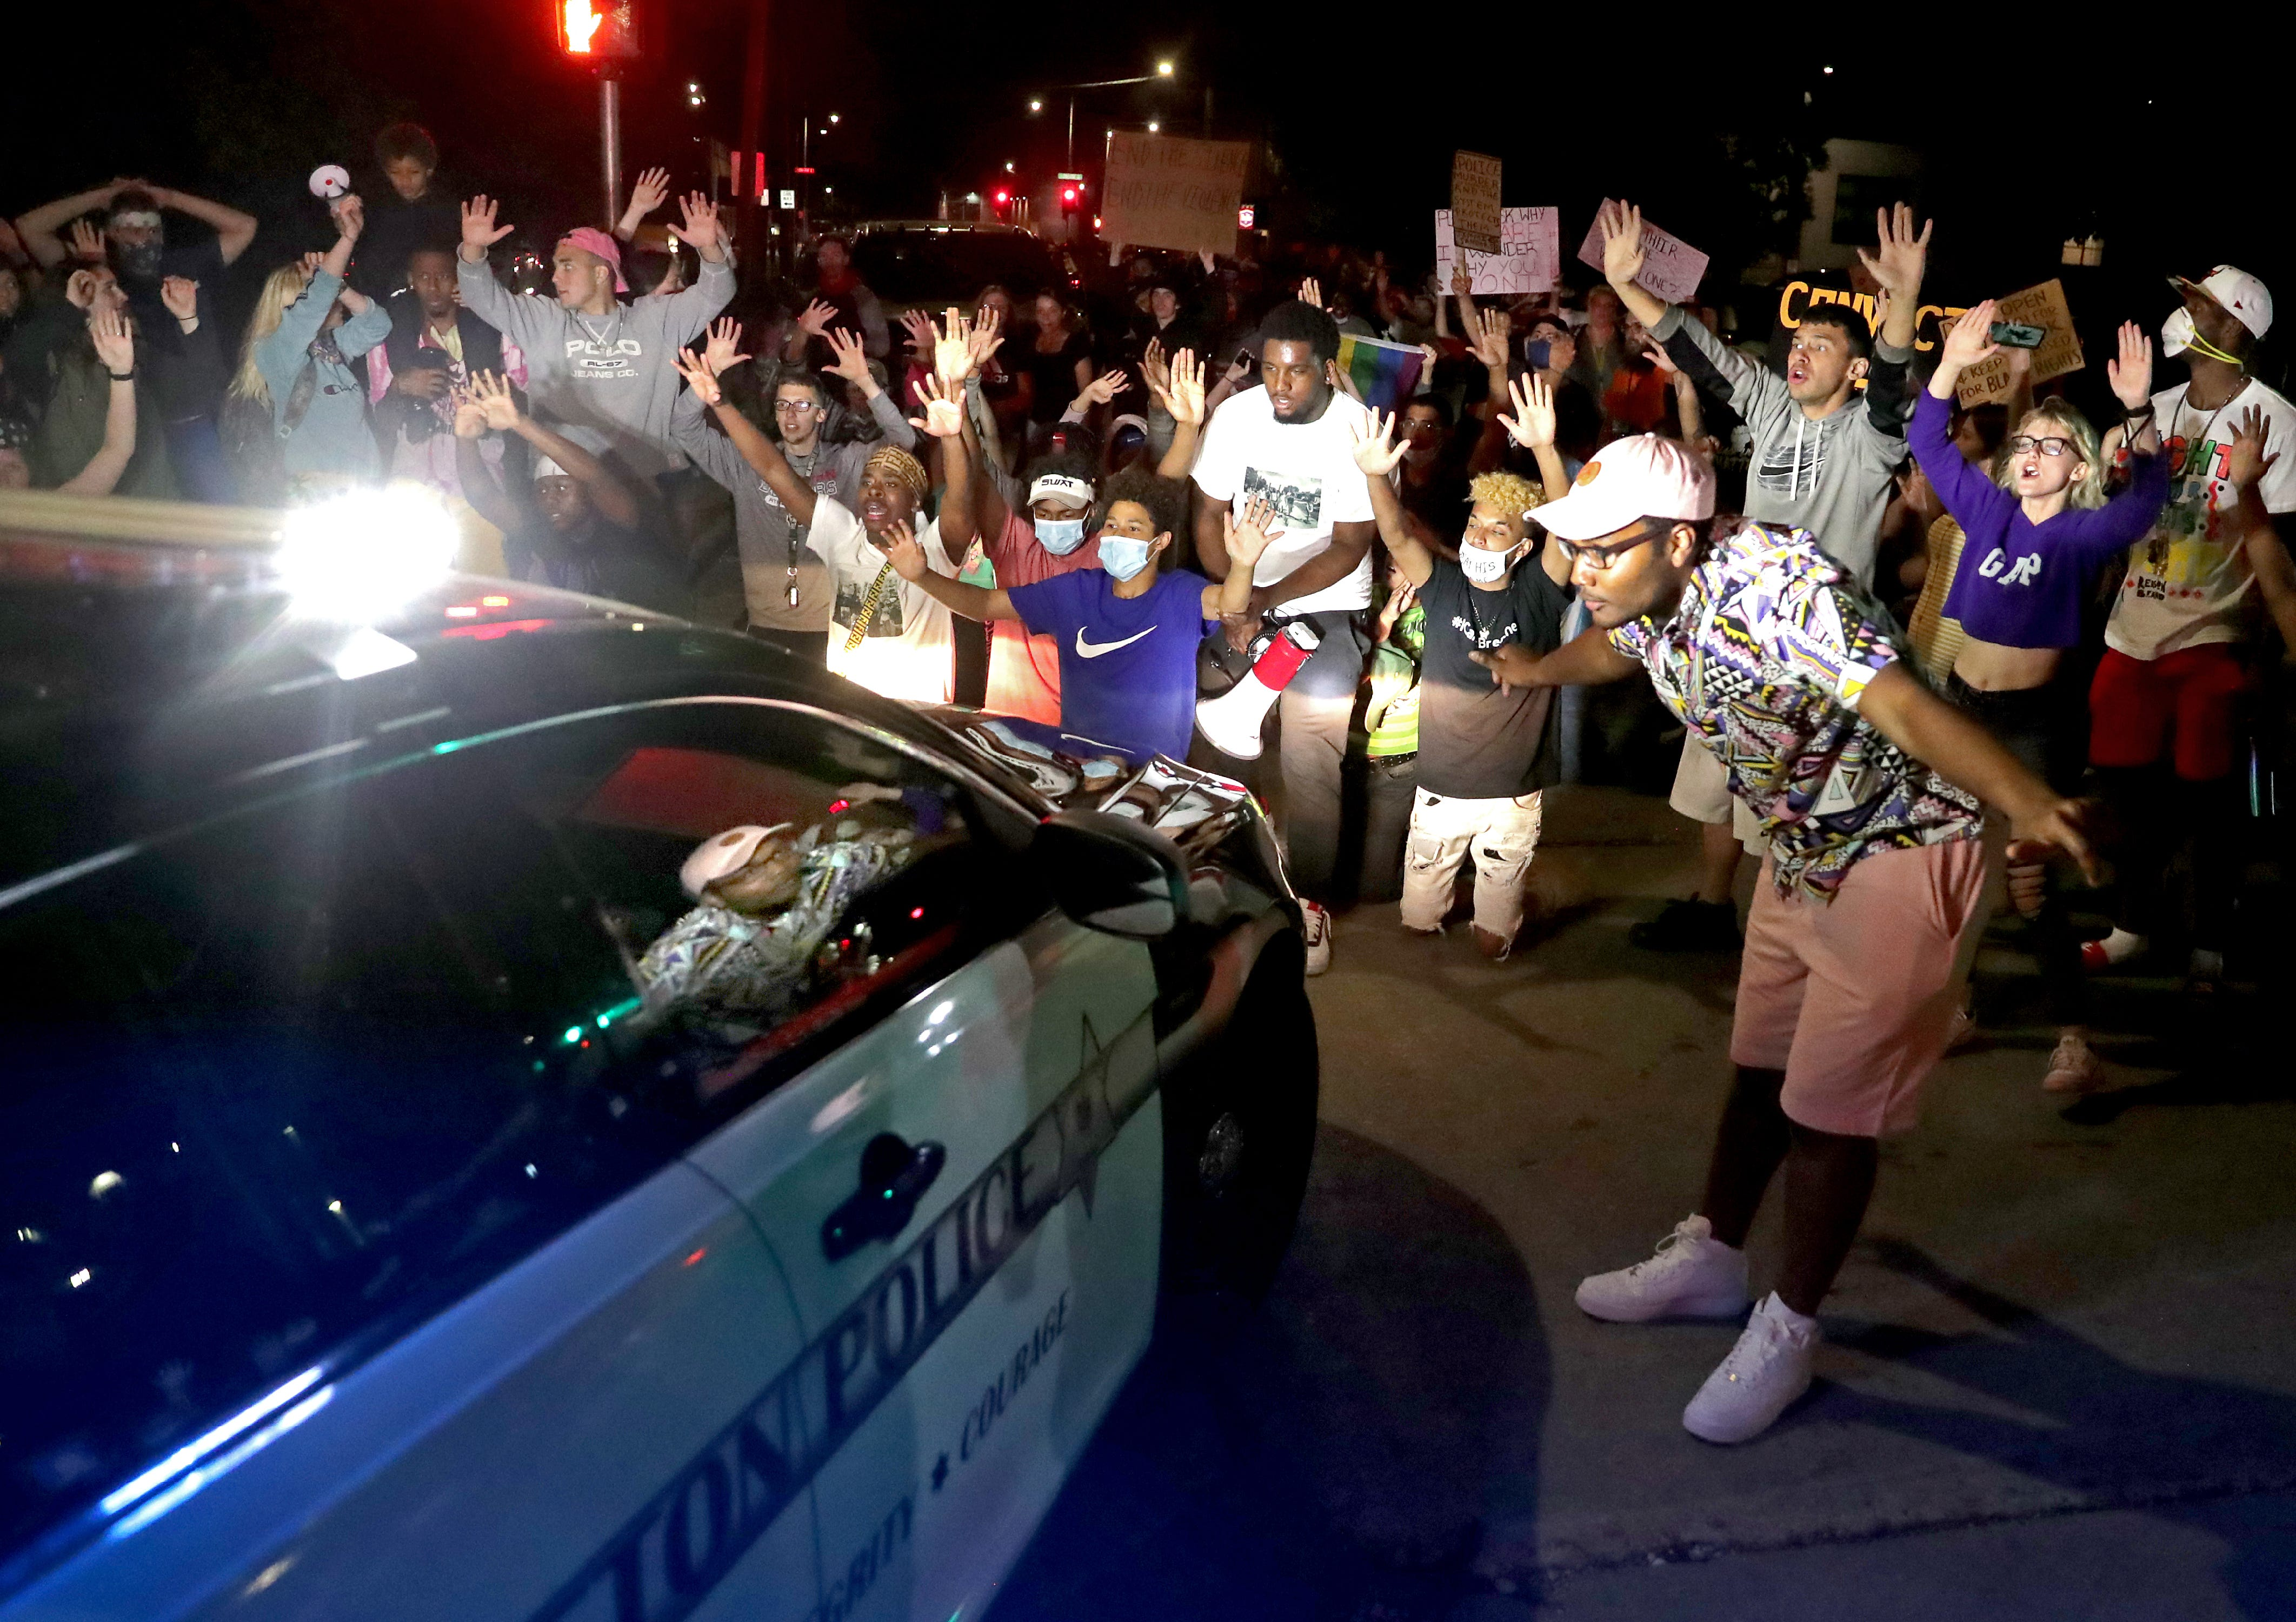 Protesters surround an Appleton police car in front of the police station during a Black Lives Matter protest on Saturday, June 6, 2020, in Appleton, Wis.